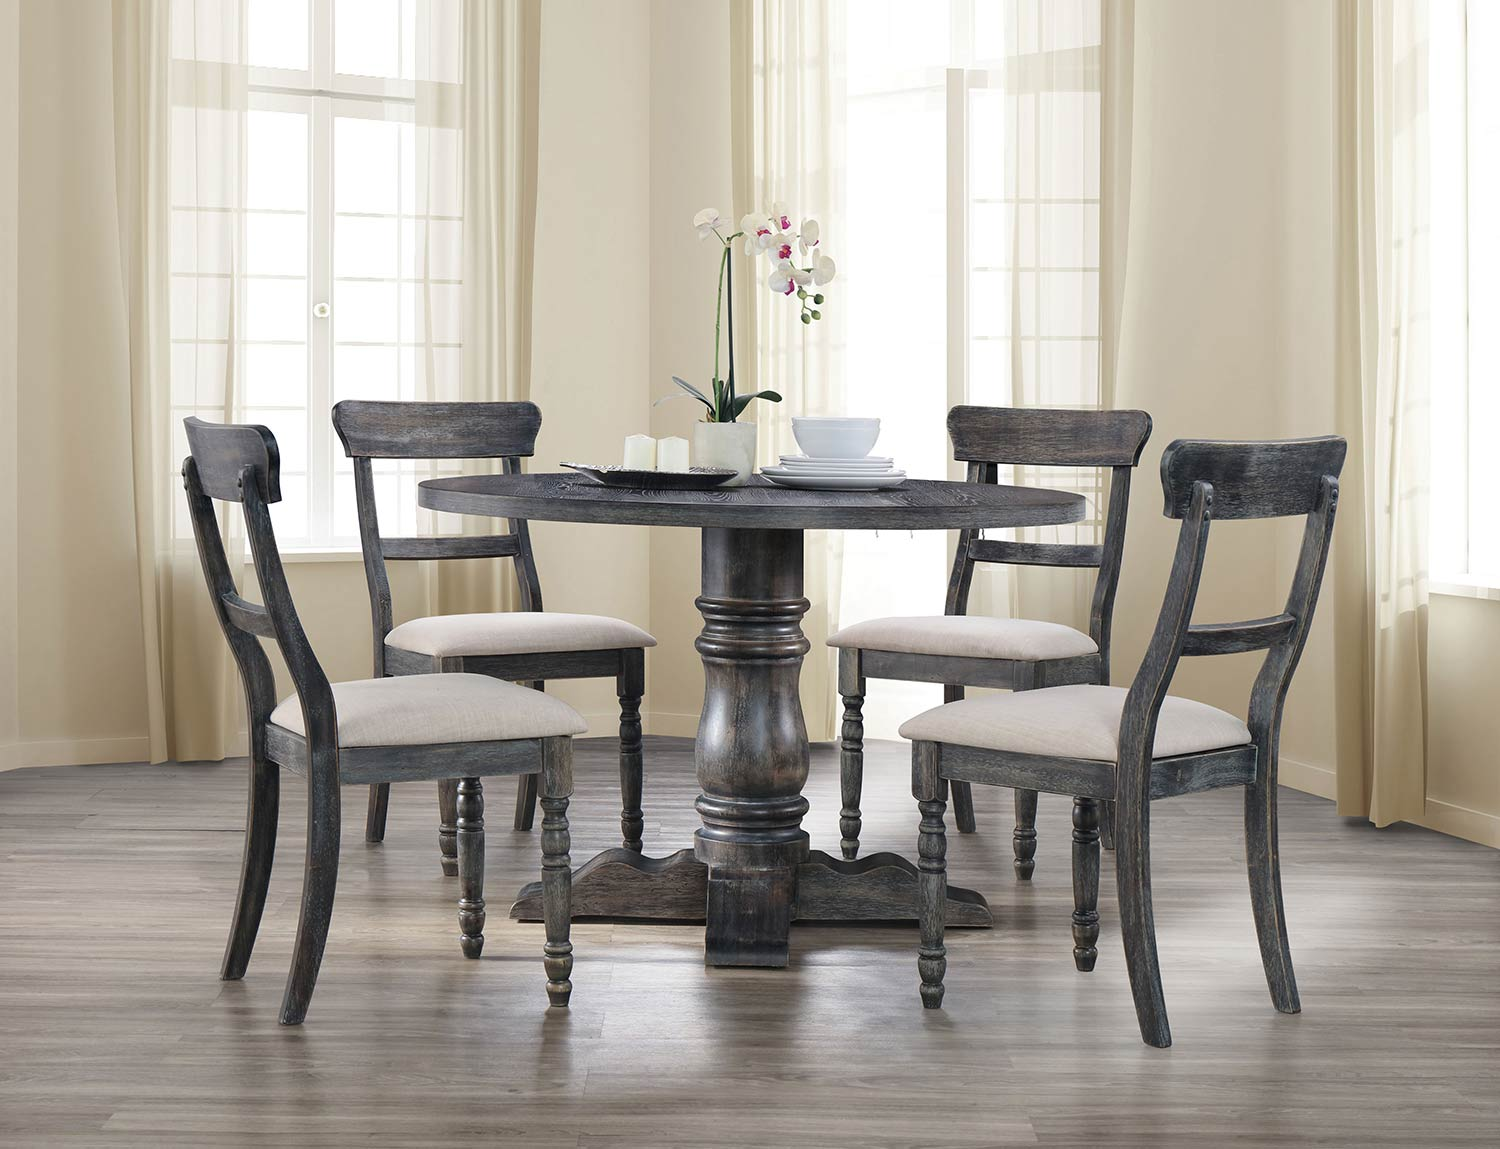 Acme Leventis Dining Set with Pedestal - Weathered Gray